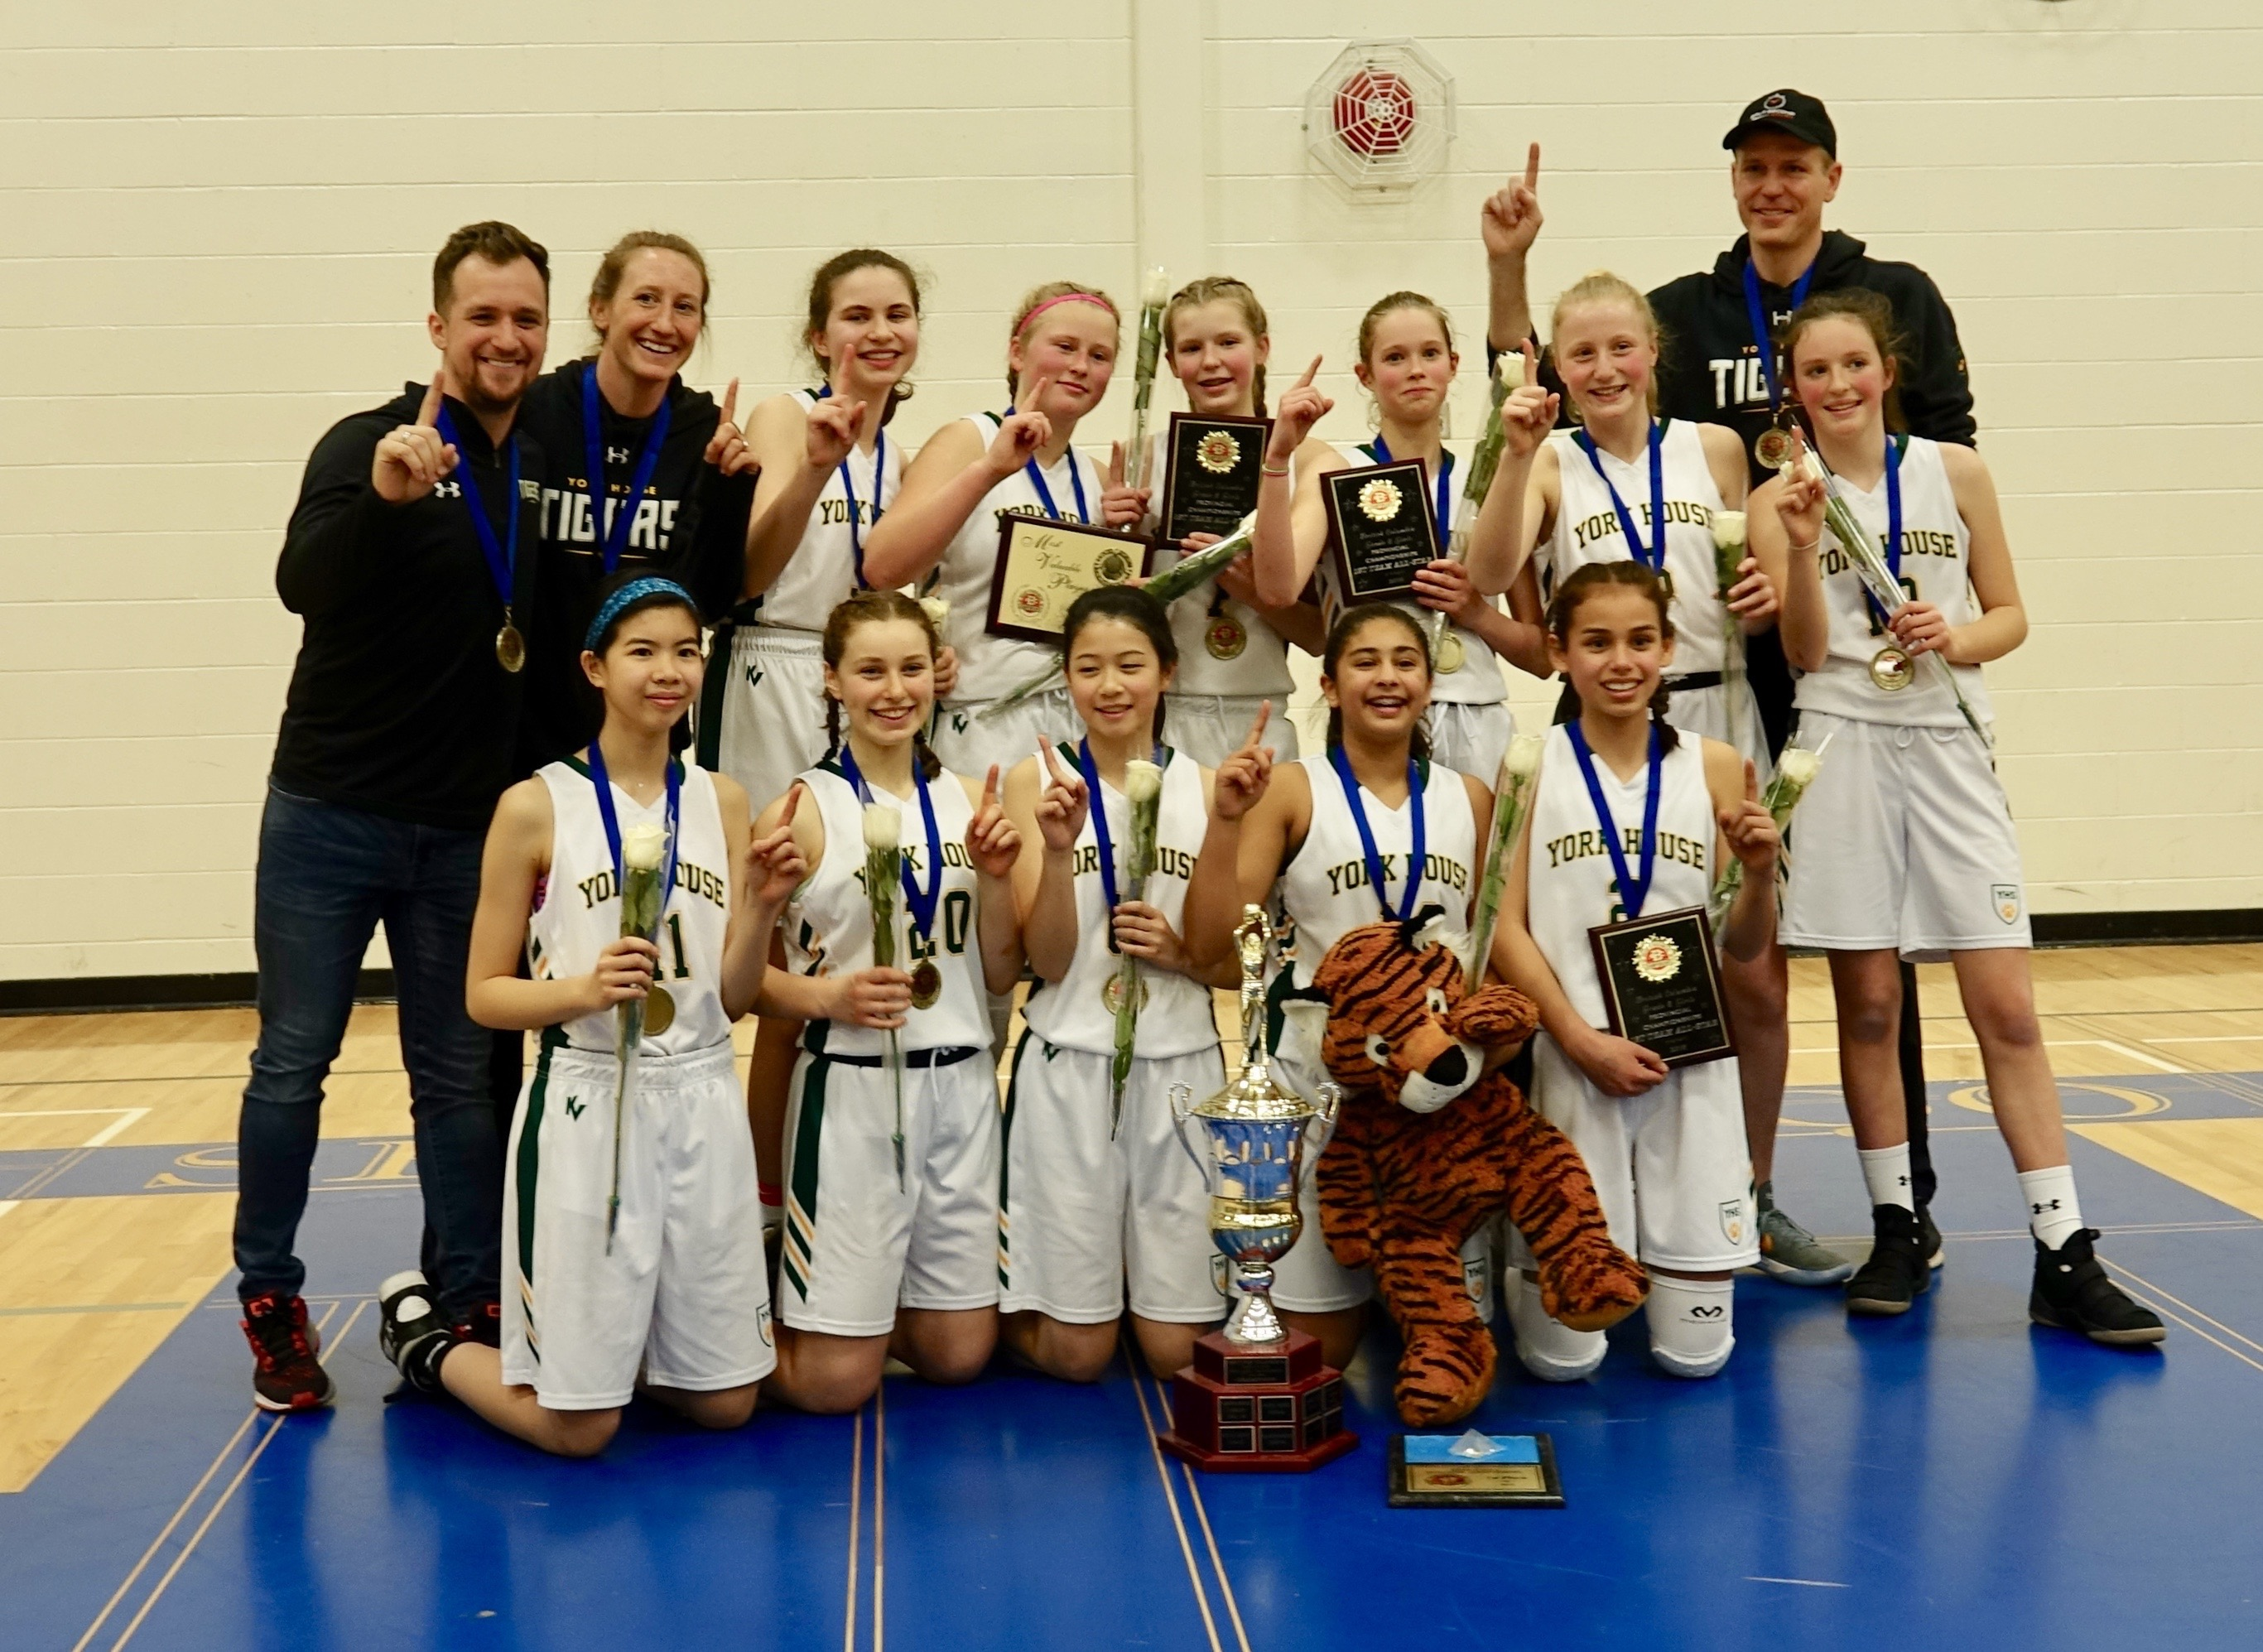 2018 - Gr. 8 Champions - York House Tigers